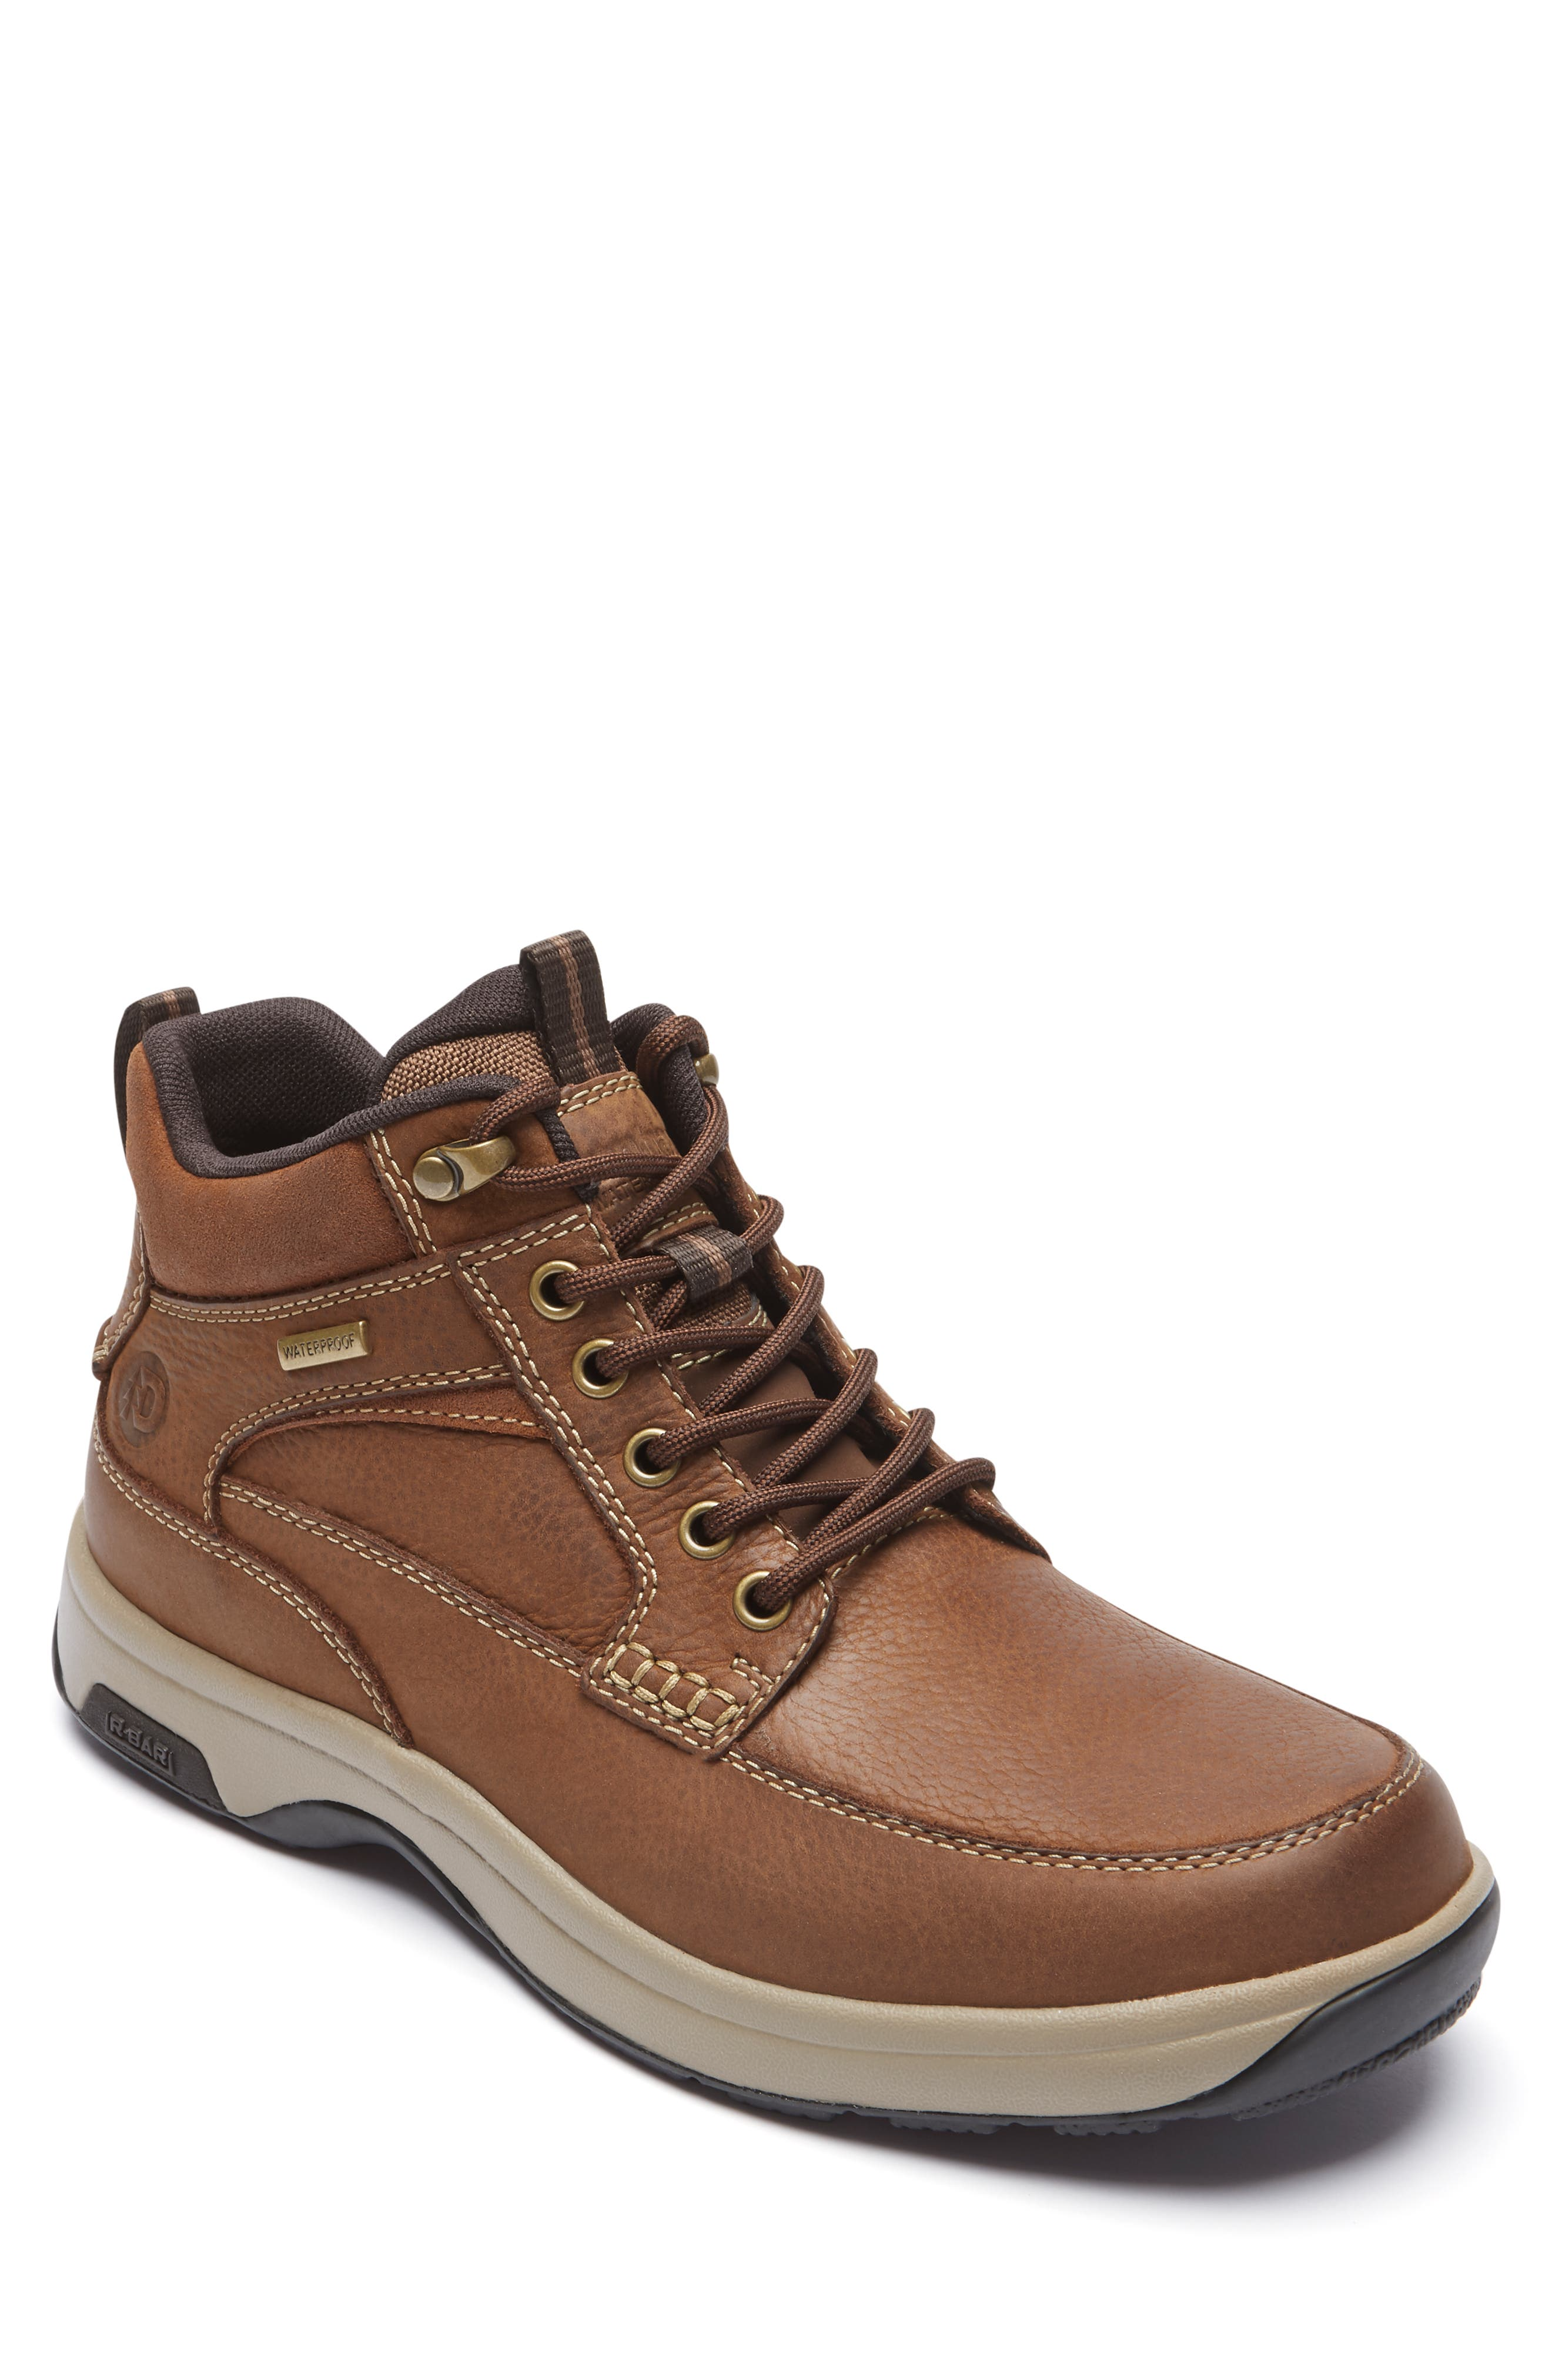 8000 Midland Waterproof Work Boot,                             Main thumbnail 1, color,                             TAN LEATHER